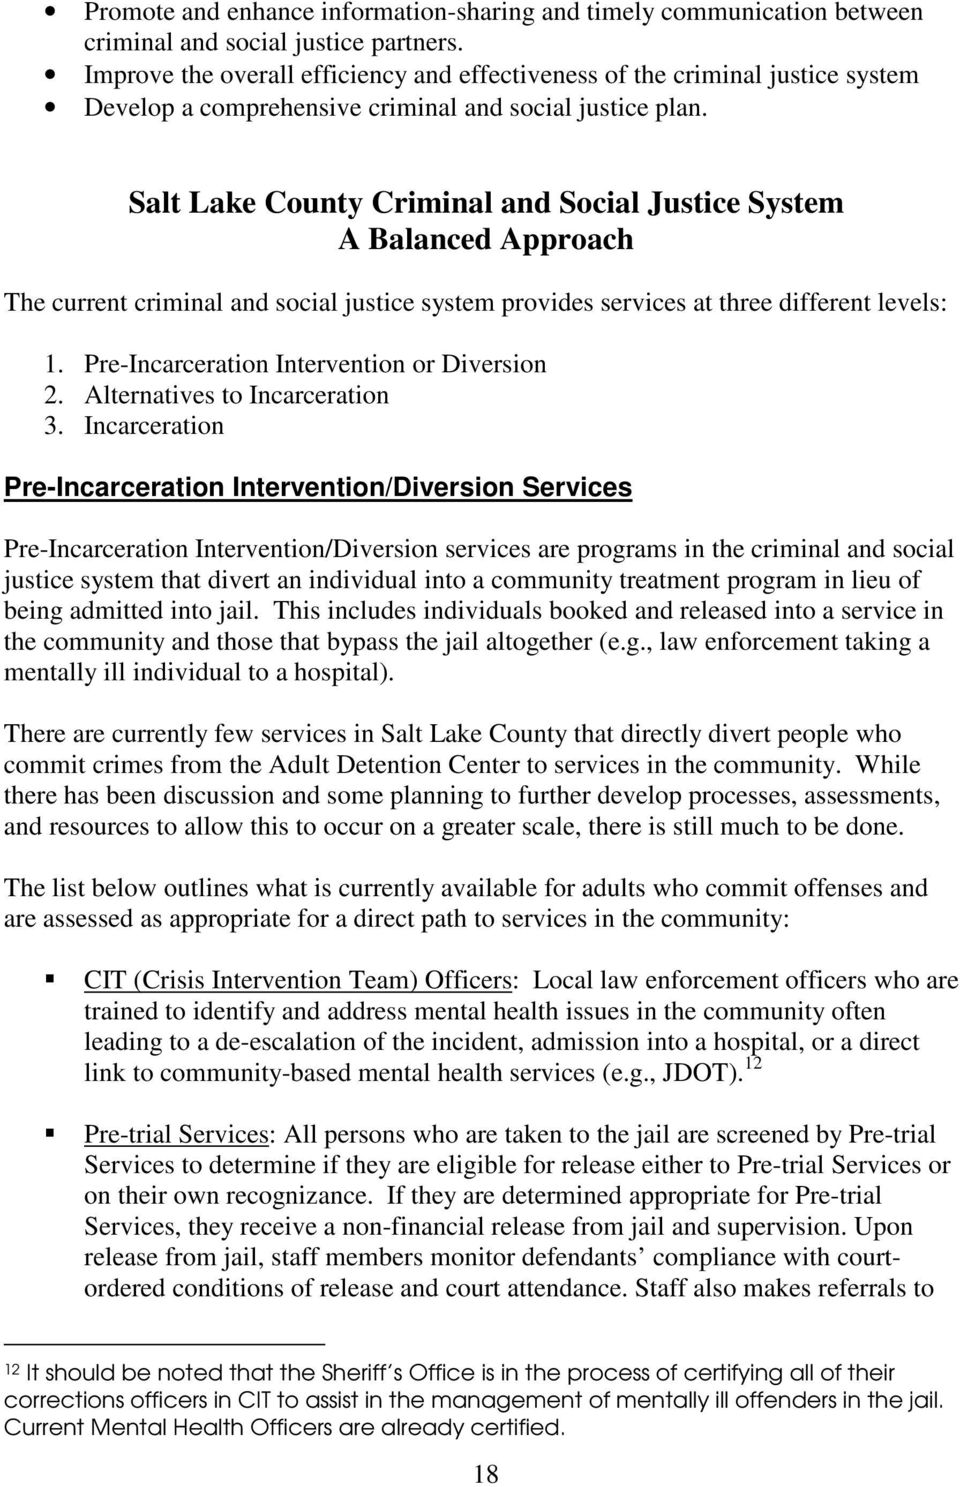 Salt Lake County Criminal and Social Justice System A Balanced Approach The current criminal and social justice system provides services at three different levels: 1.